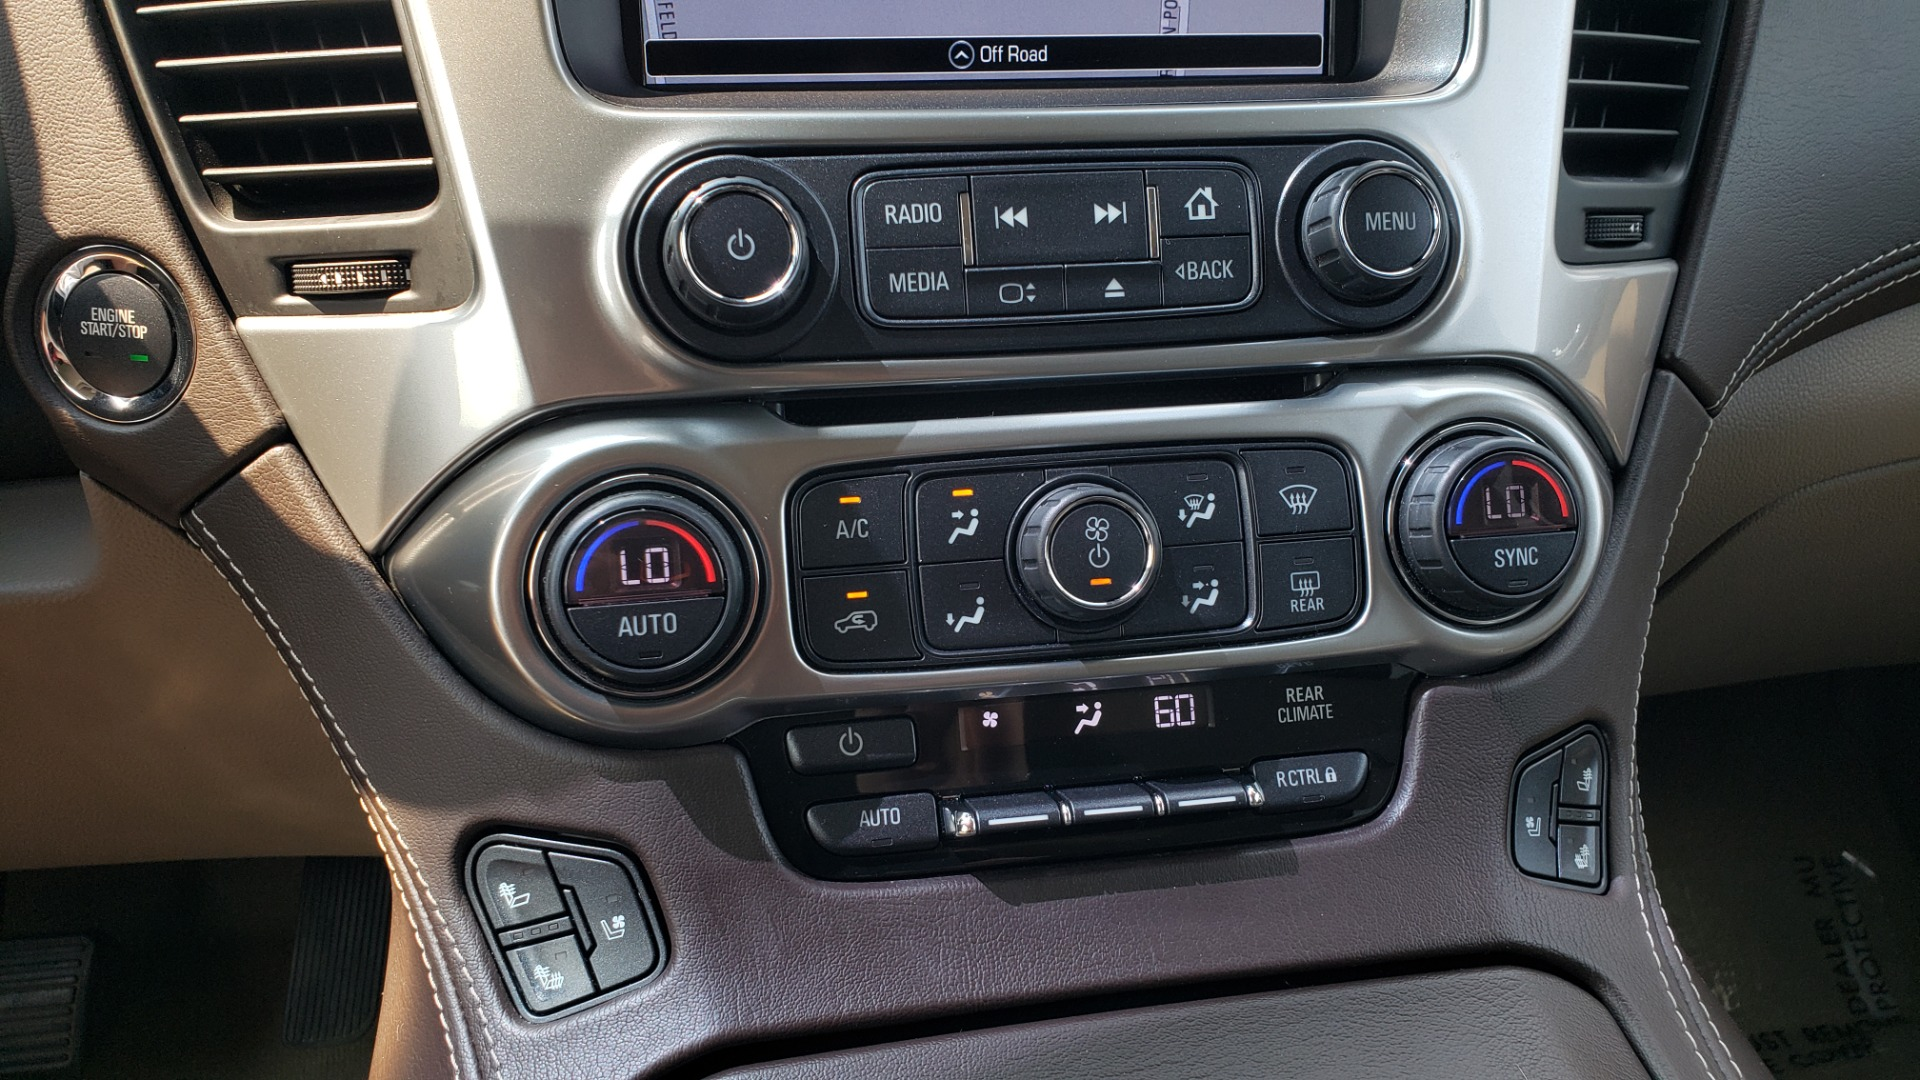 Used 2018 Chevrolet TAHOE PREMIER 4WD / NAV / SUNROOF / BOSE / 3-ROW / HUD / REARVIEW for sale $63,995 at Formula Imports in Charlotte NC 28227 54